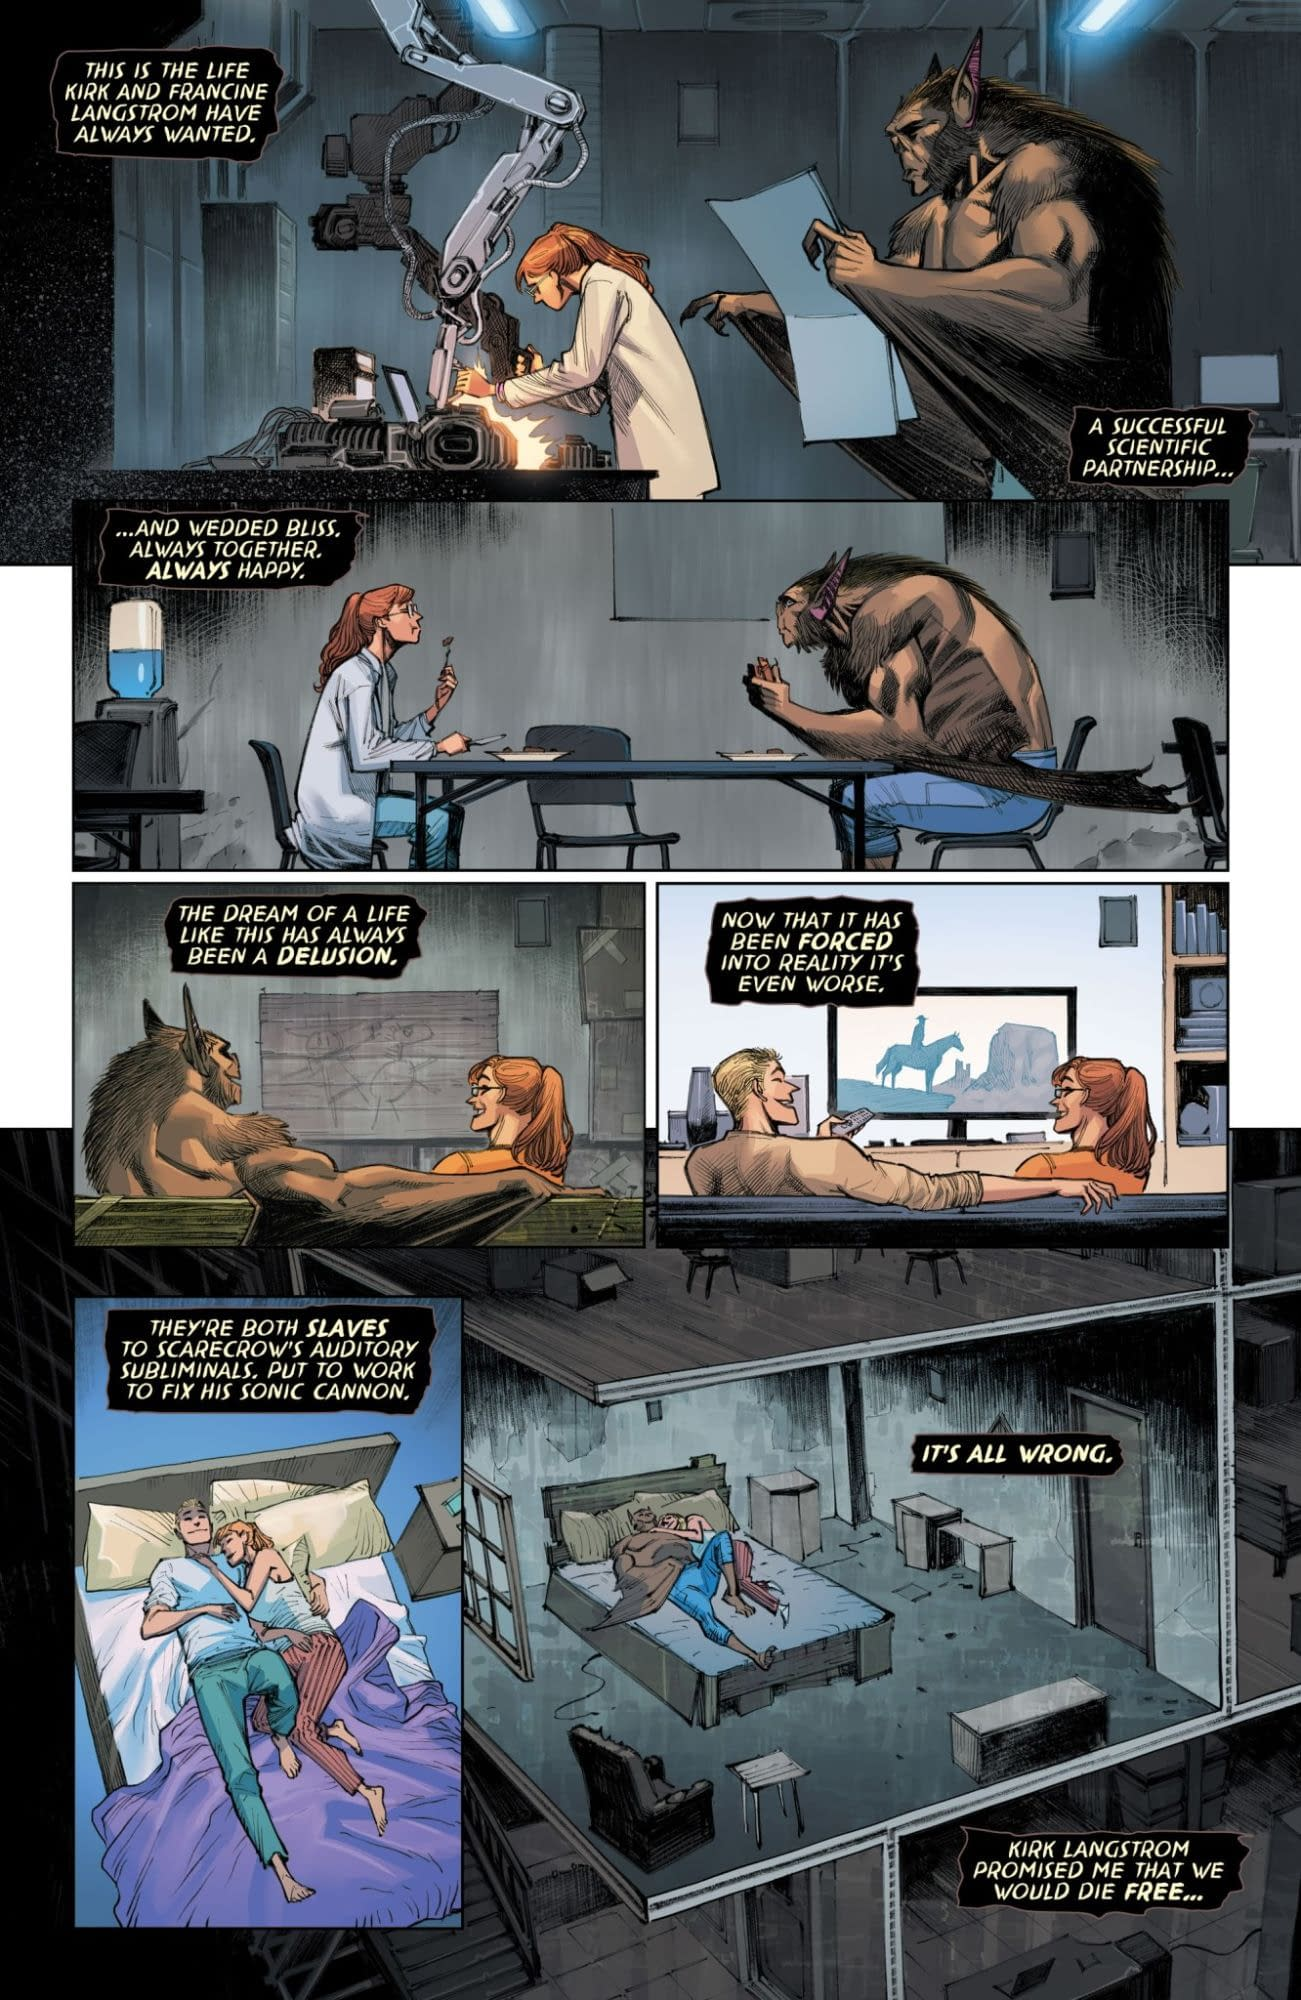 Interior preview page from MAN-BAT #4 (OF 5)